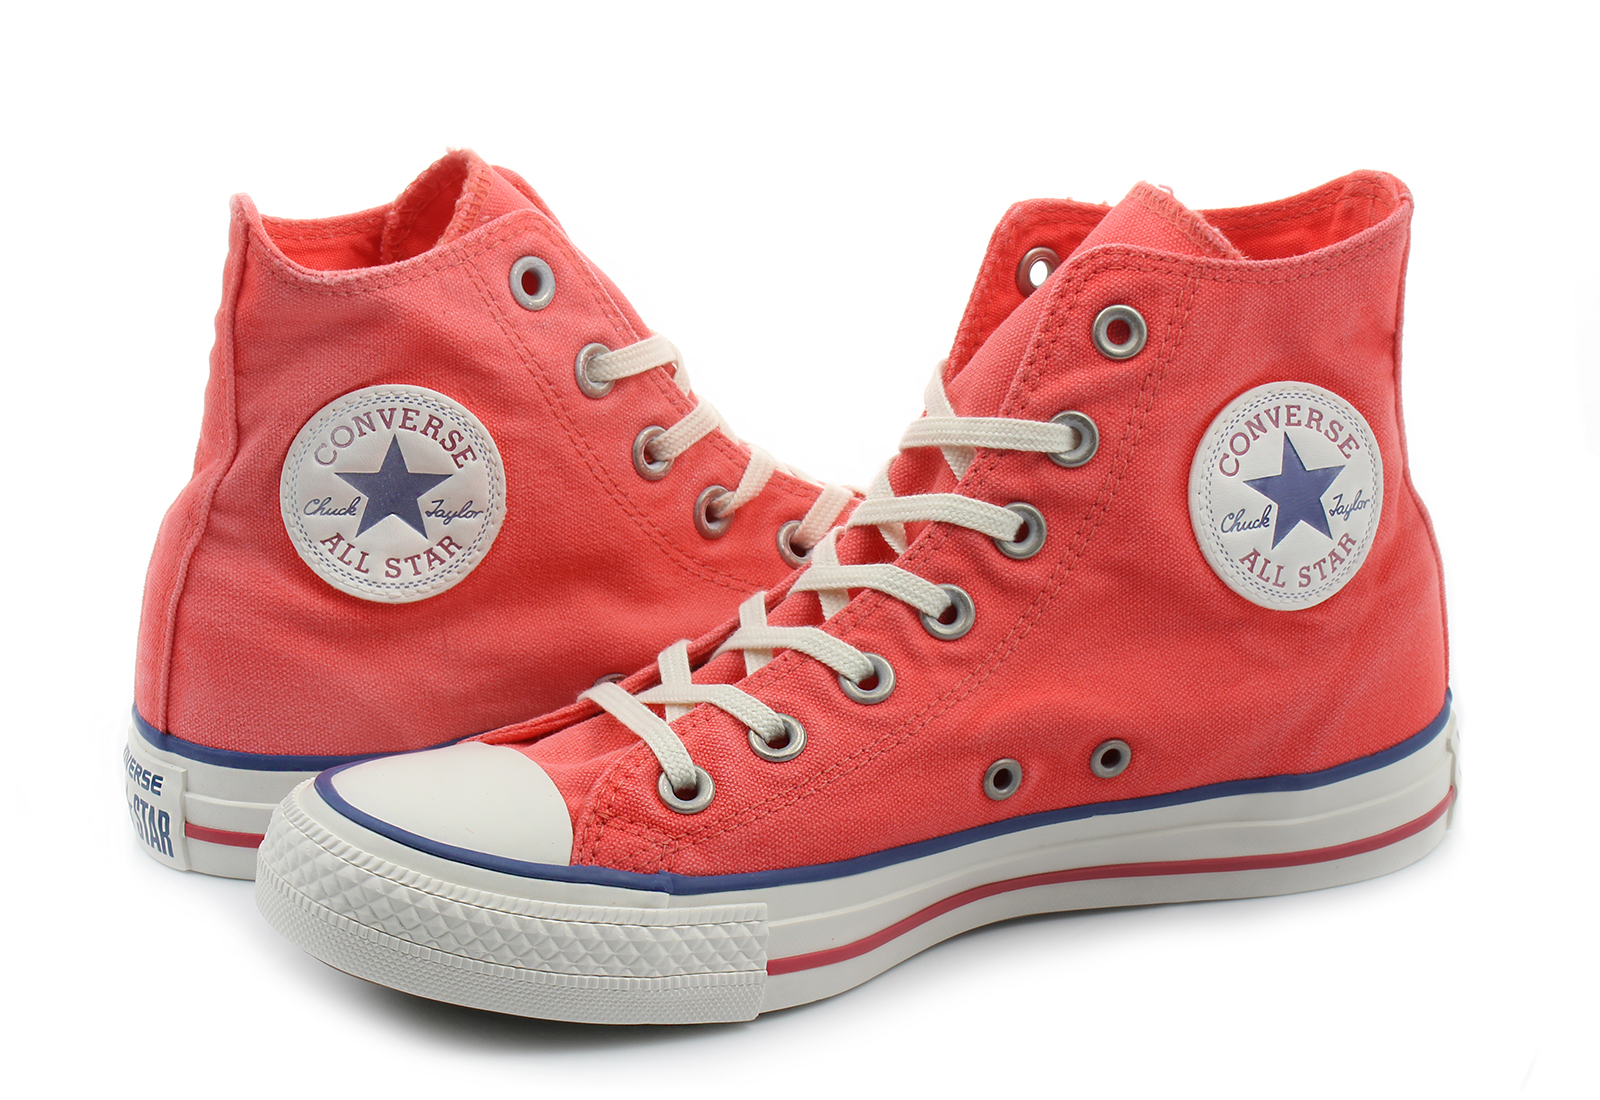 8717e97d9f5204 Converse Sneakers - Chuck Taylor All Star Sun Bleach Hi - 160956C ...